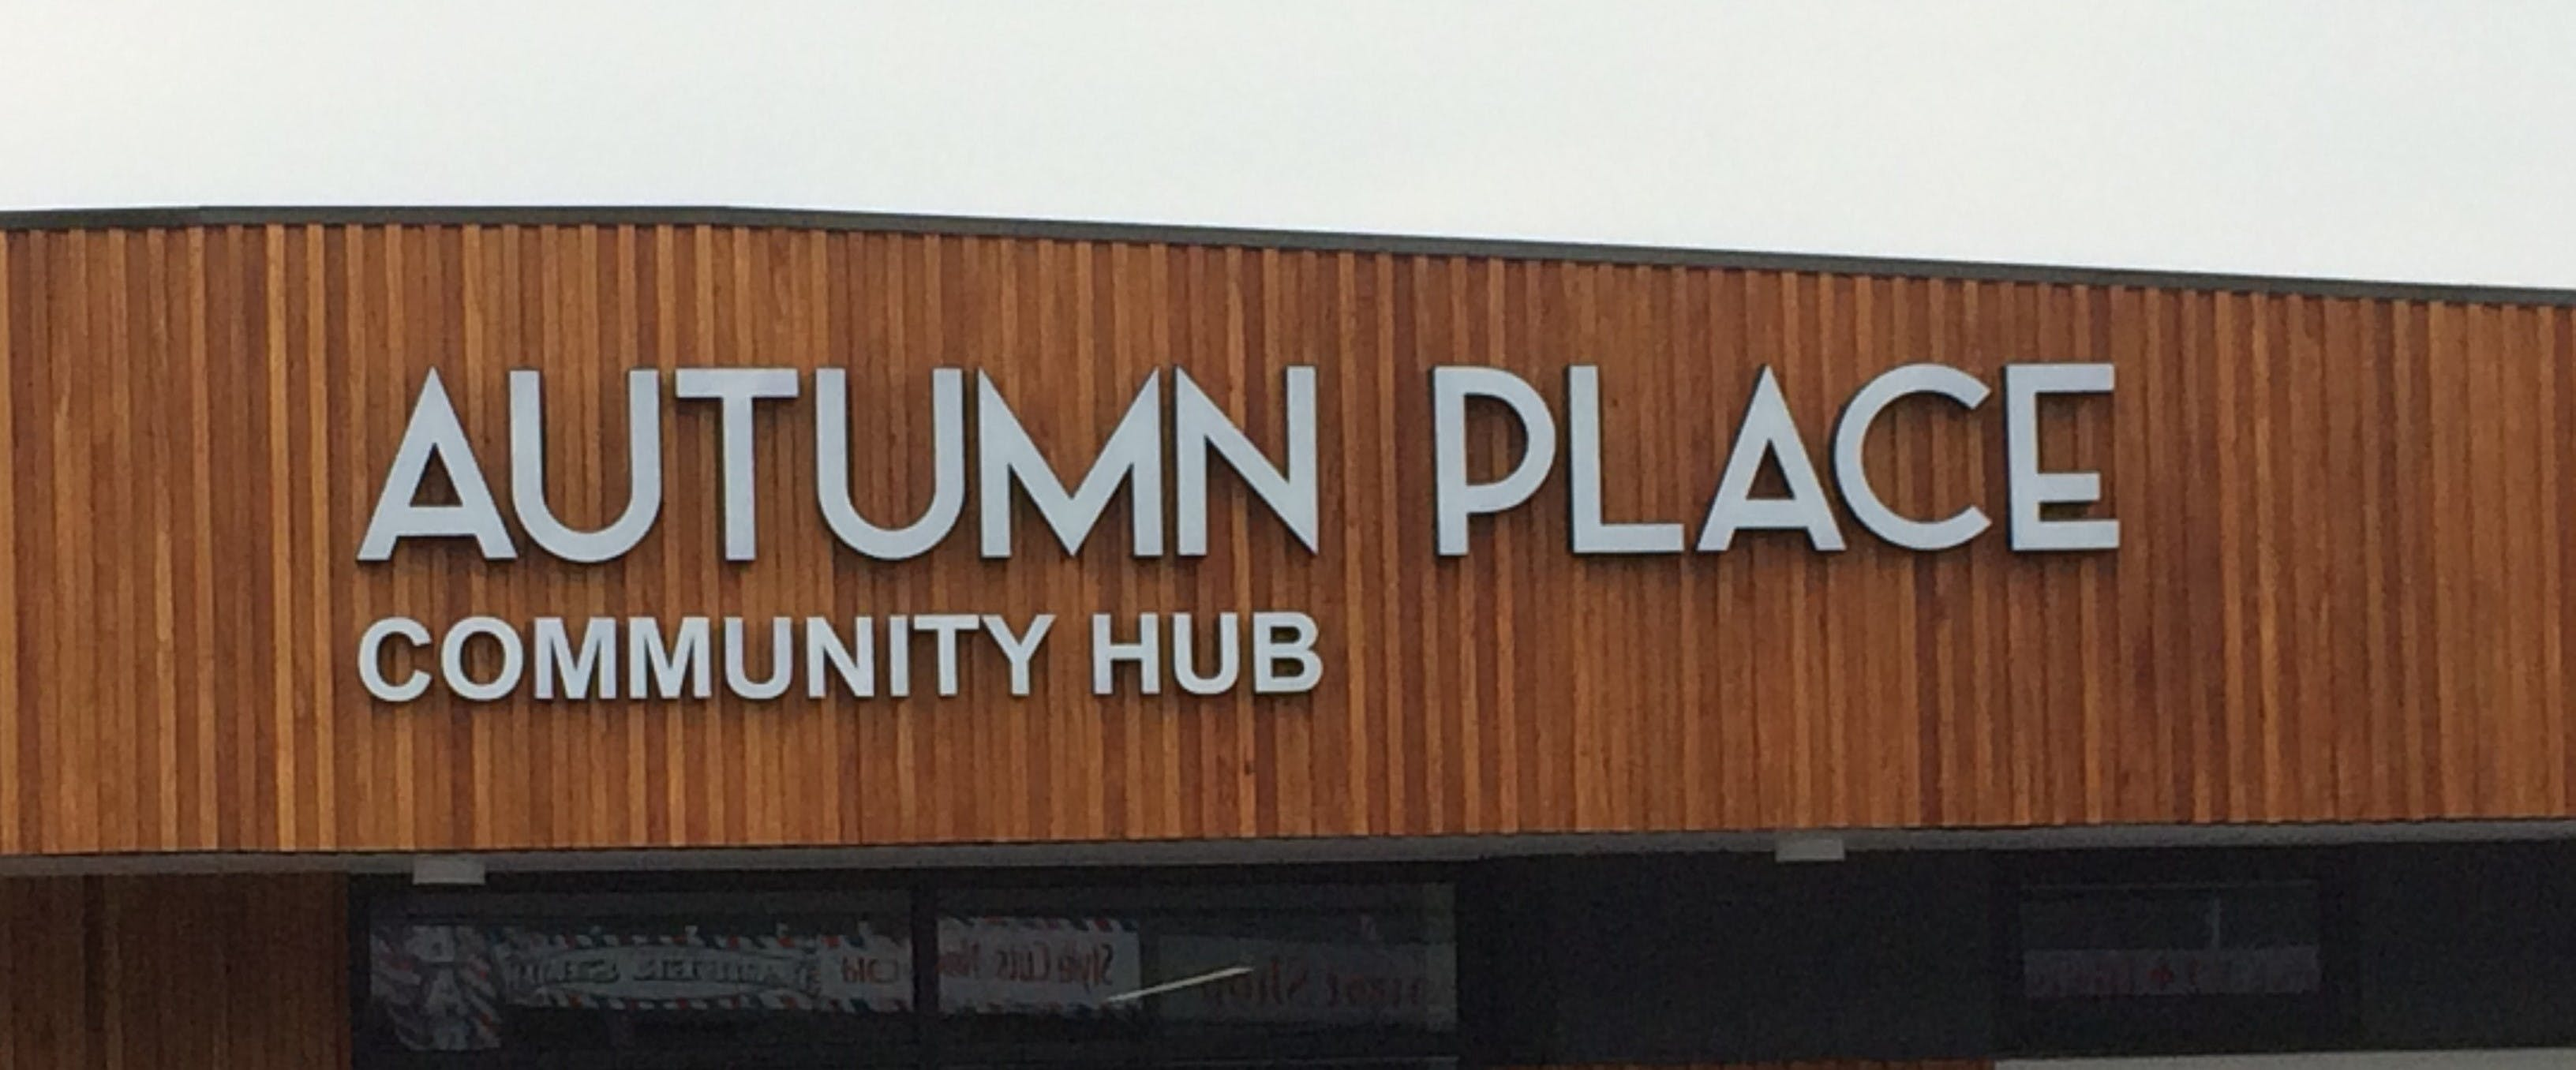 Autumn Place Community Hub